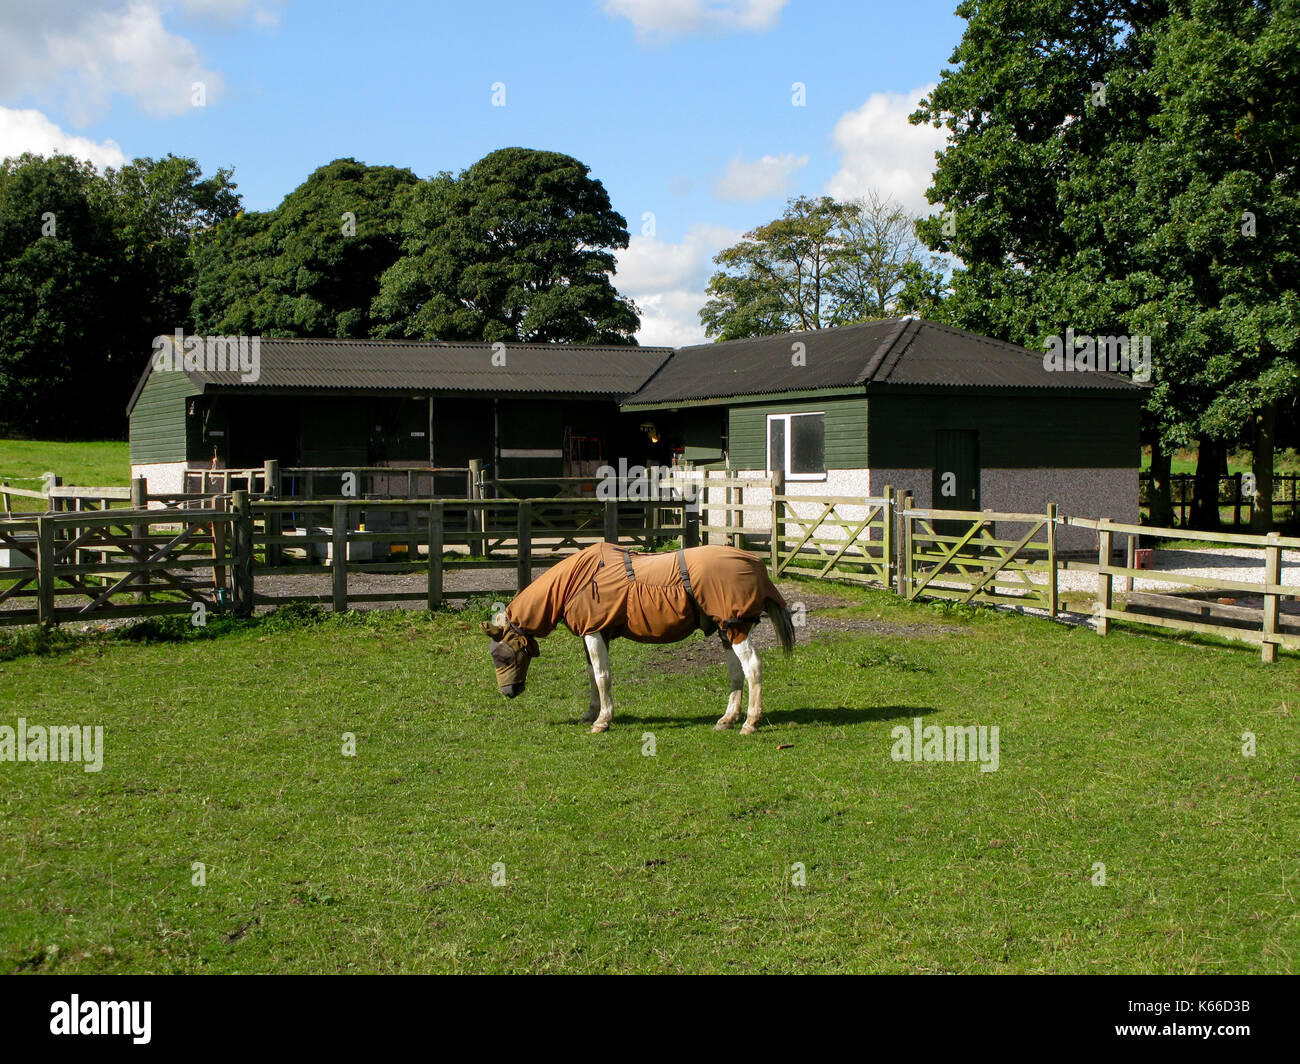 Small Stables High Resolution Stock Photography And Images Alamy